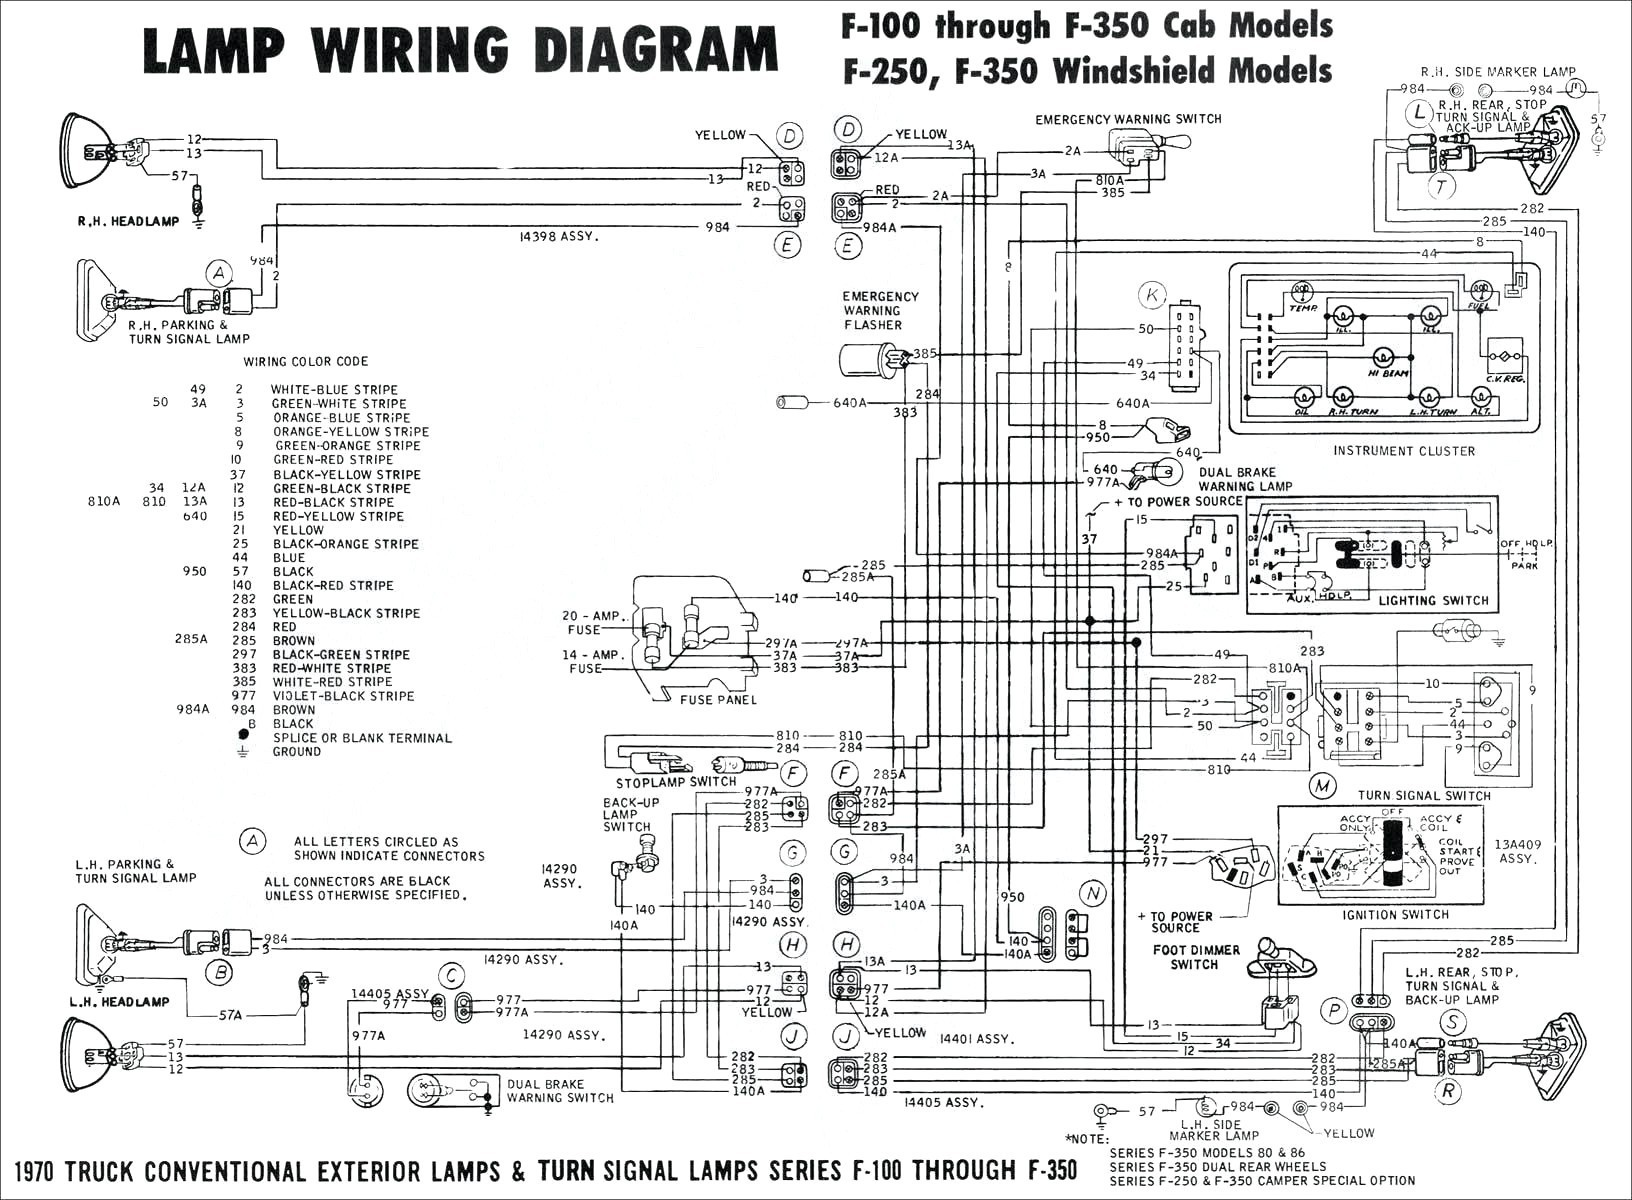 95 Dodge Dakota Fuse Box Diagram Trusted Wiring 1995 Ram 2500 3500 Schematic Diagrams Jeep Grand Cherokee